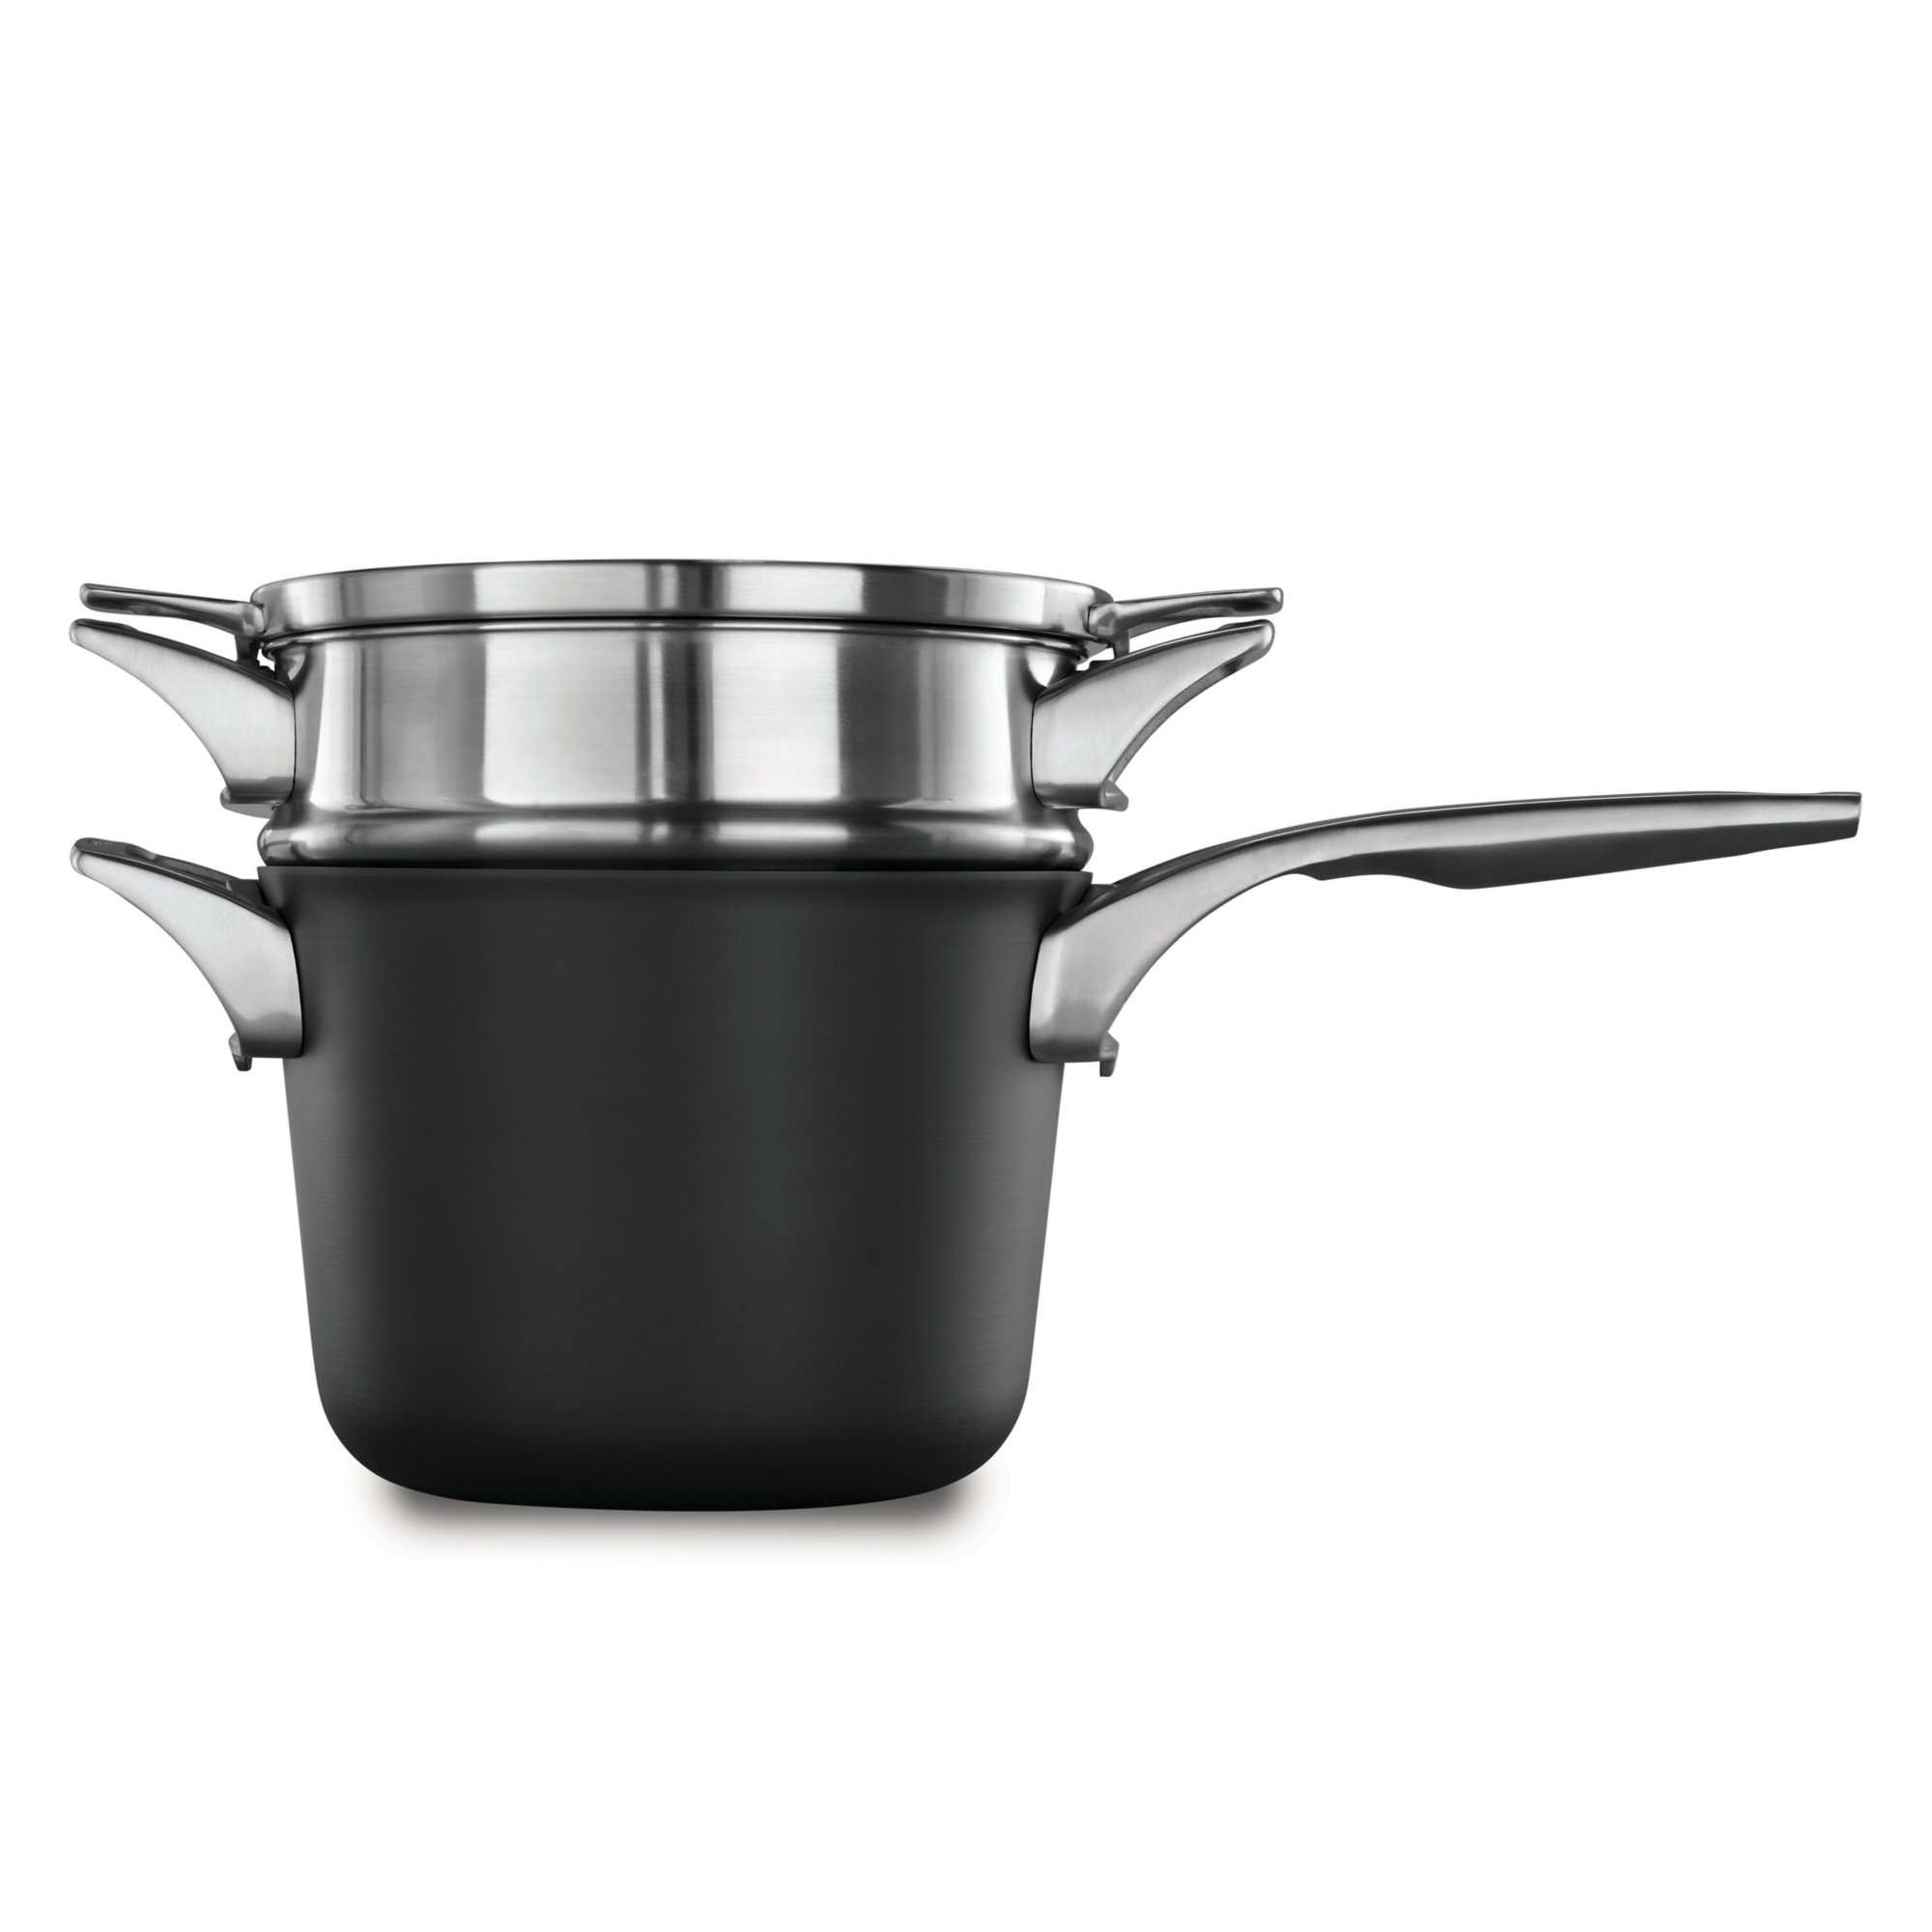 Calphalon Premier? Space Saving Hard Anodized Nonstick 4.5 qt. Sauce Pan with Double Boiler